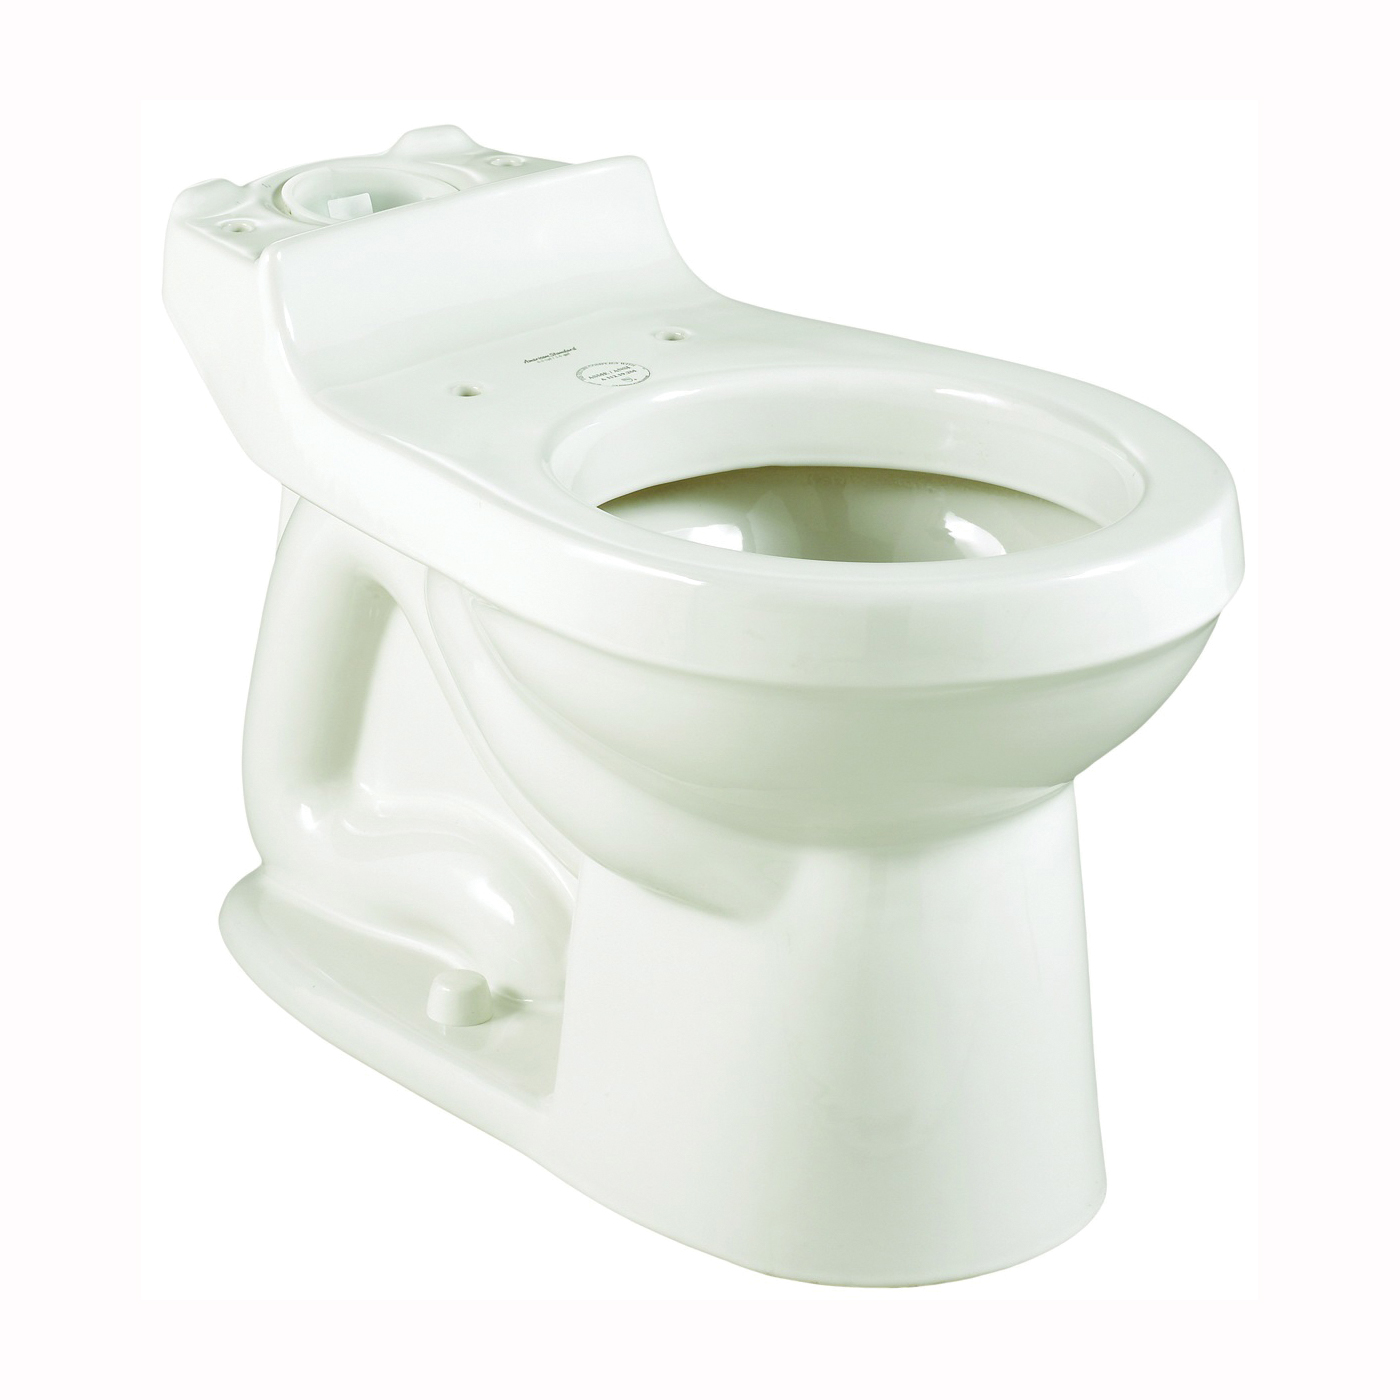 Picture of American Standard Champion 3395A001.020 Toilet Bowl, Elongated, 1.28 gpf Flush, 12 in Rough-In, Vitreous China